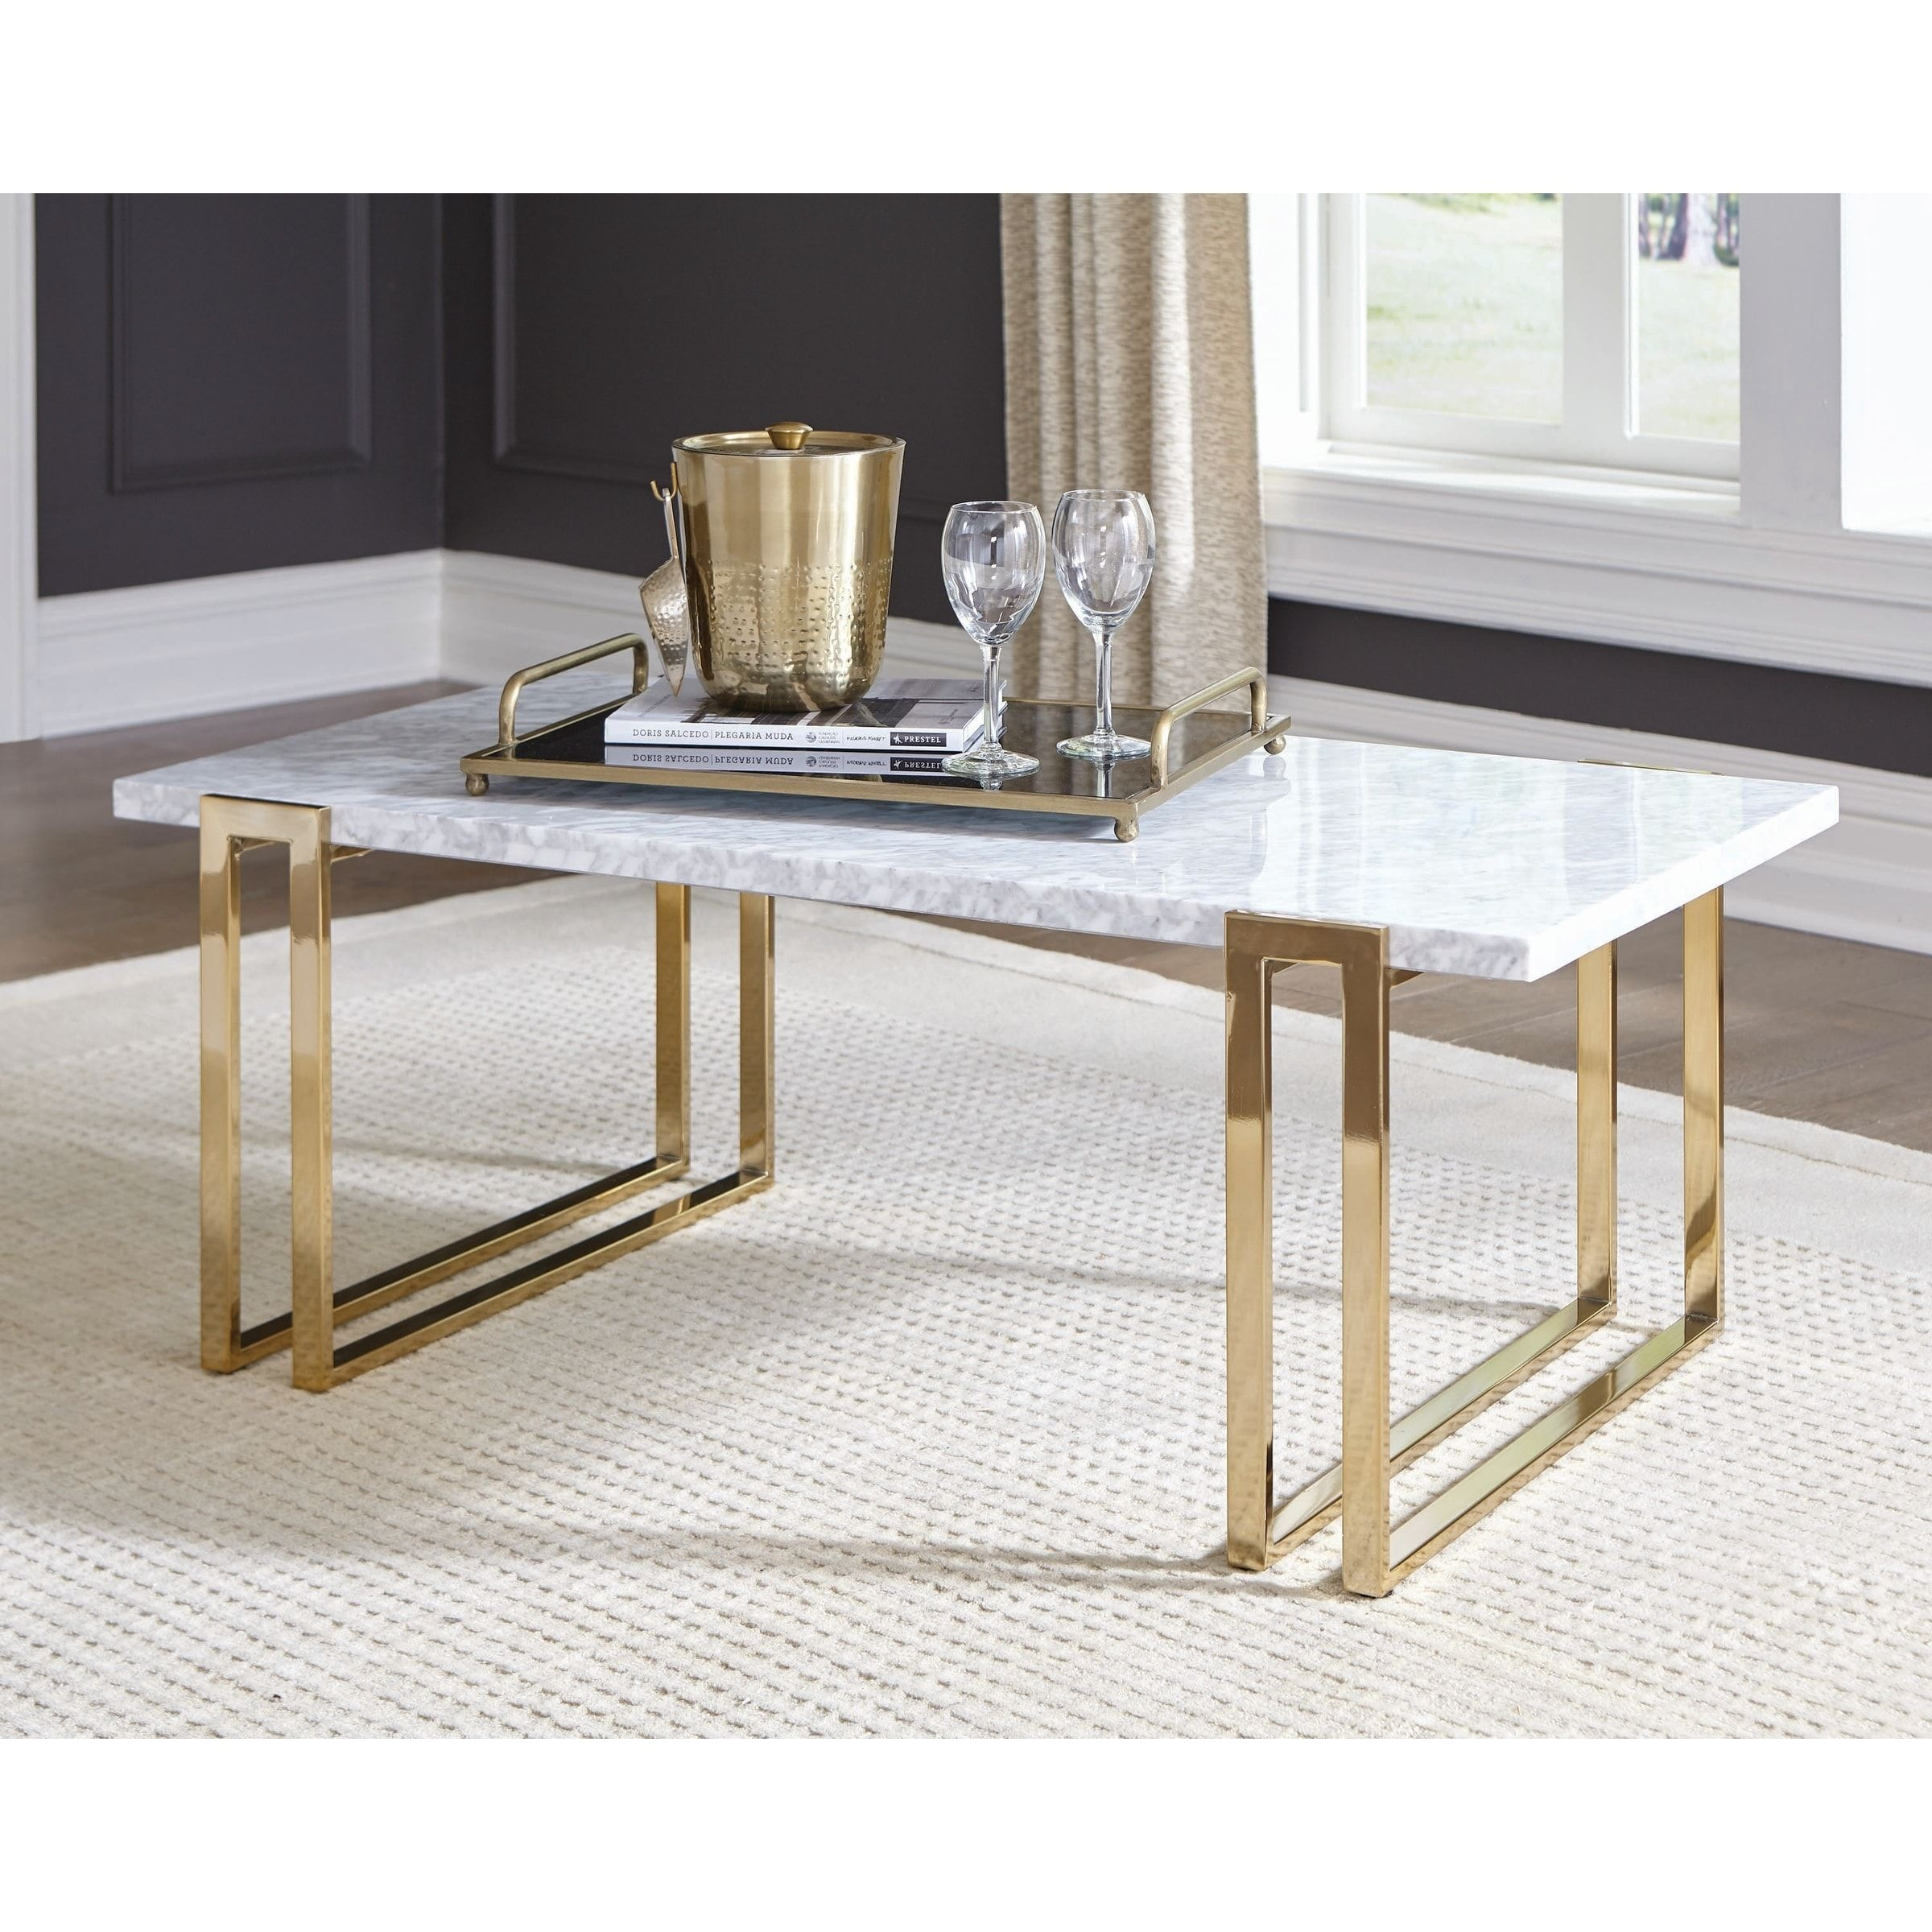 Overstock Com Online Shopping Bedding Furniture Electronics Jewelry Clothing More Coffee Table Rectangle Gold Coffee Table Coffee Table [ 2400 x 2400 Pixel ]